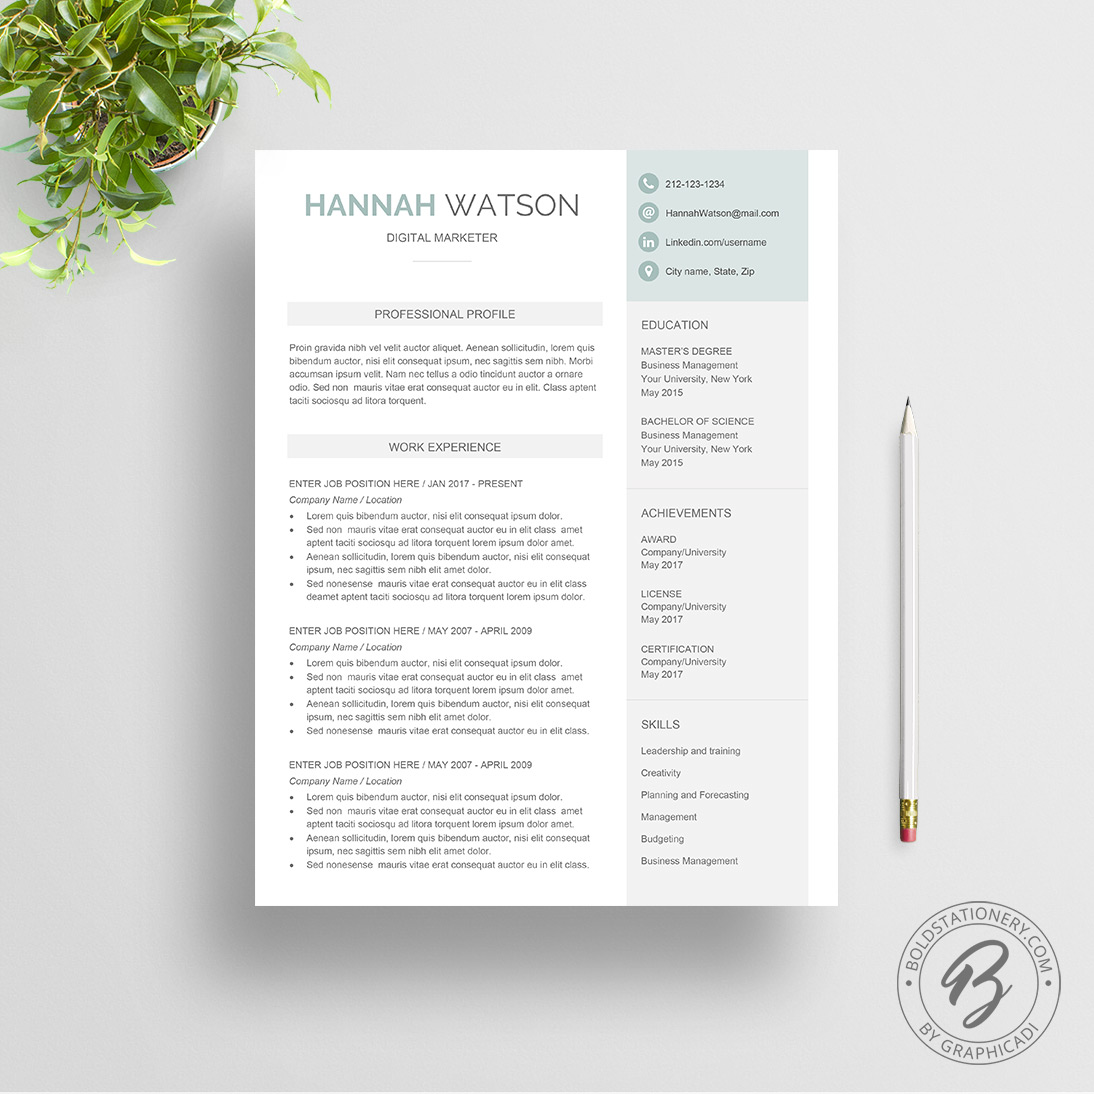 Resume Template Hannah  Graphicadi